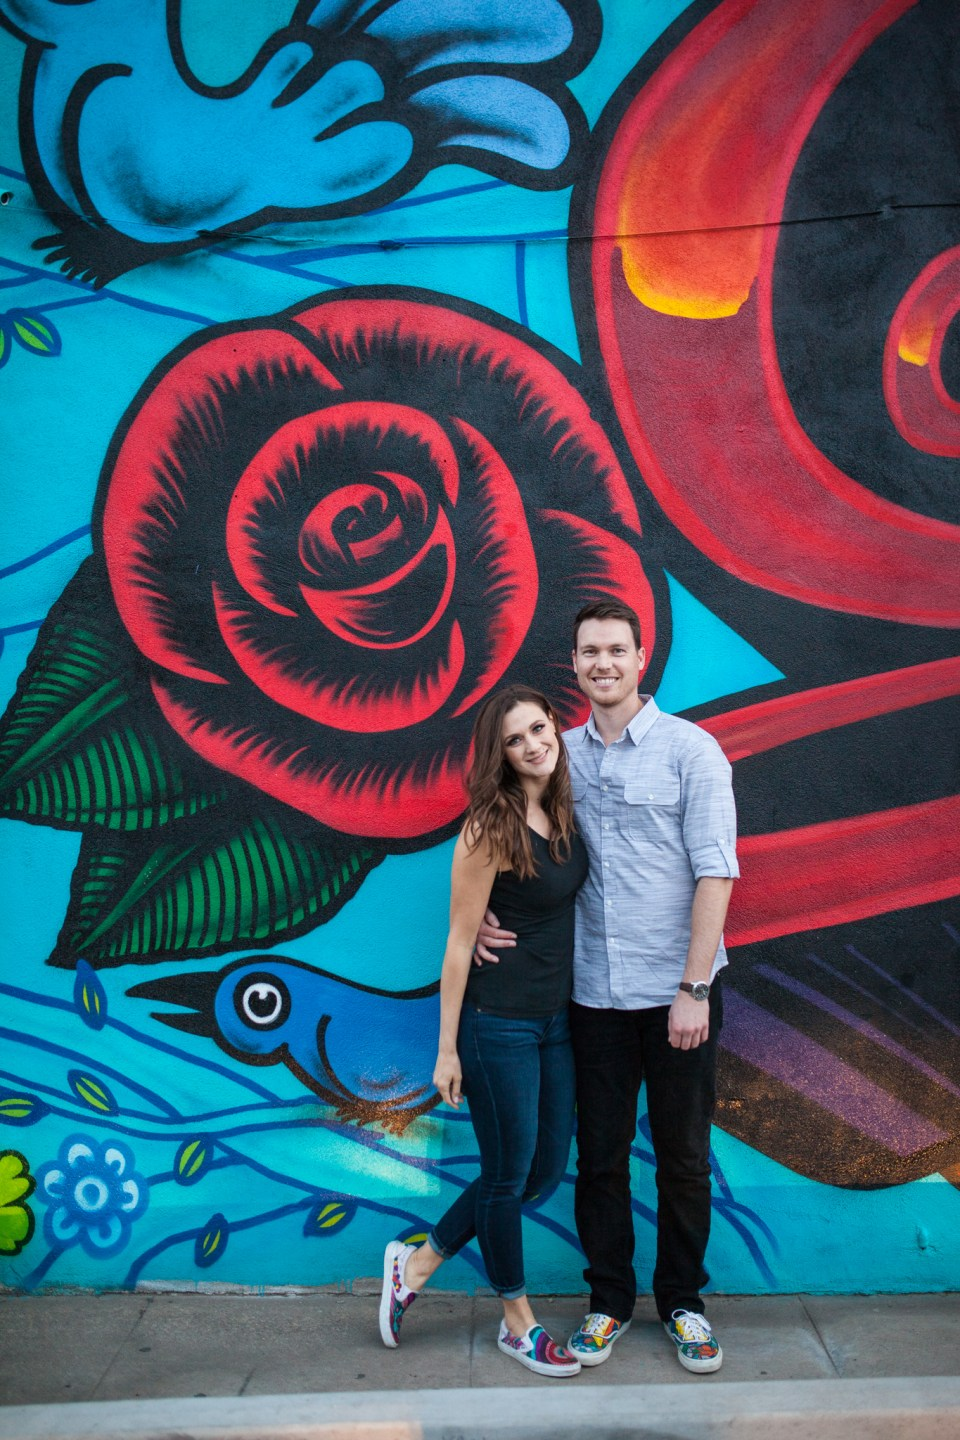 downtown phoenix engagement photos engagement pictures engagement photographer for engagement session